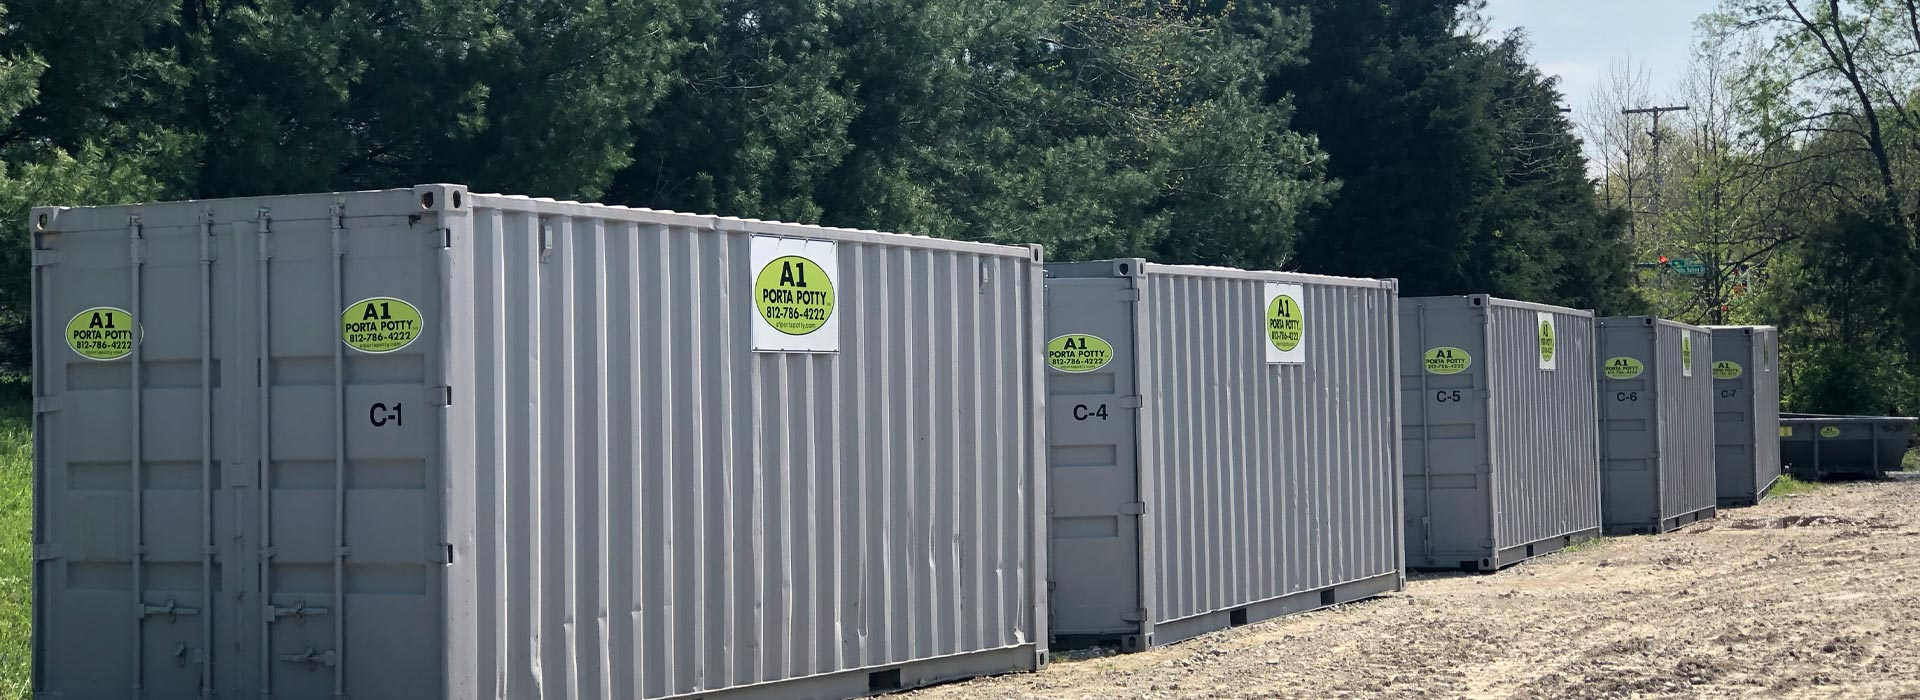 storage containers background